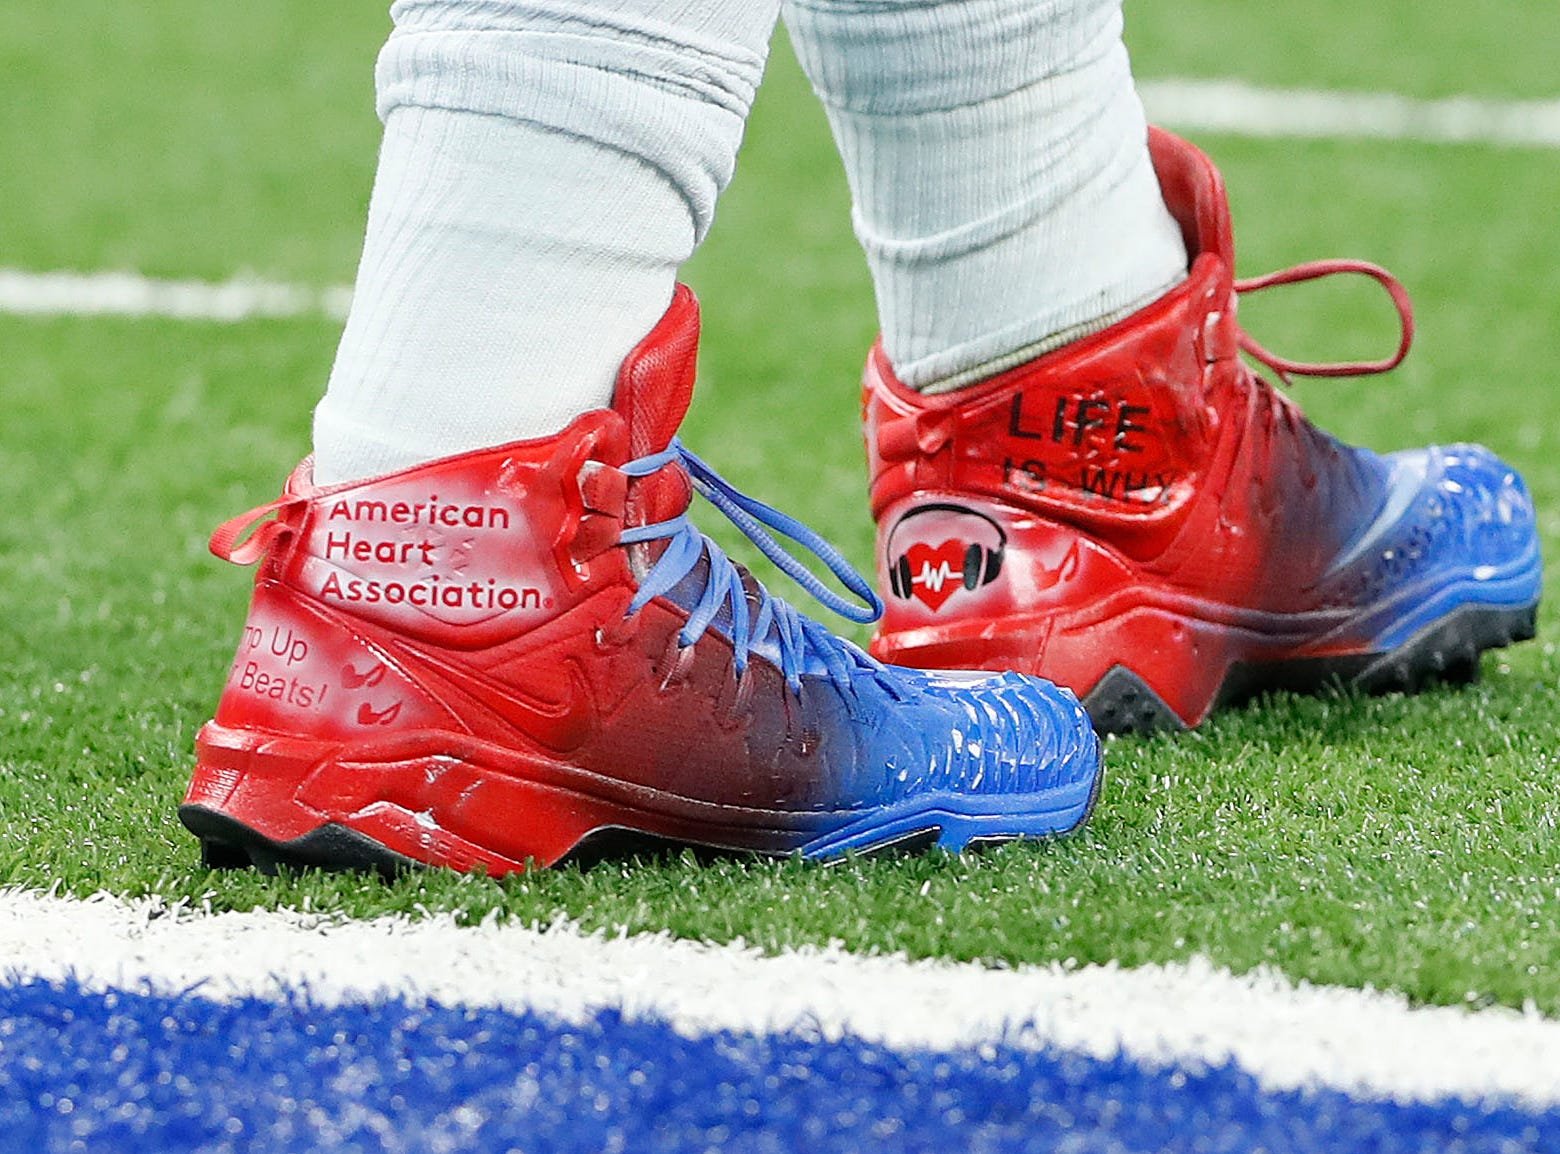 Indianapolis Colts offensive guard Evan Boehm (67) and his My Cleats, My Cause before the start of their game against the Dallas Cowboys at Lucas Oil Stadium on Sunday, Dec. 16, 2018.